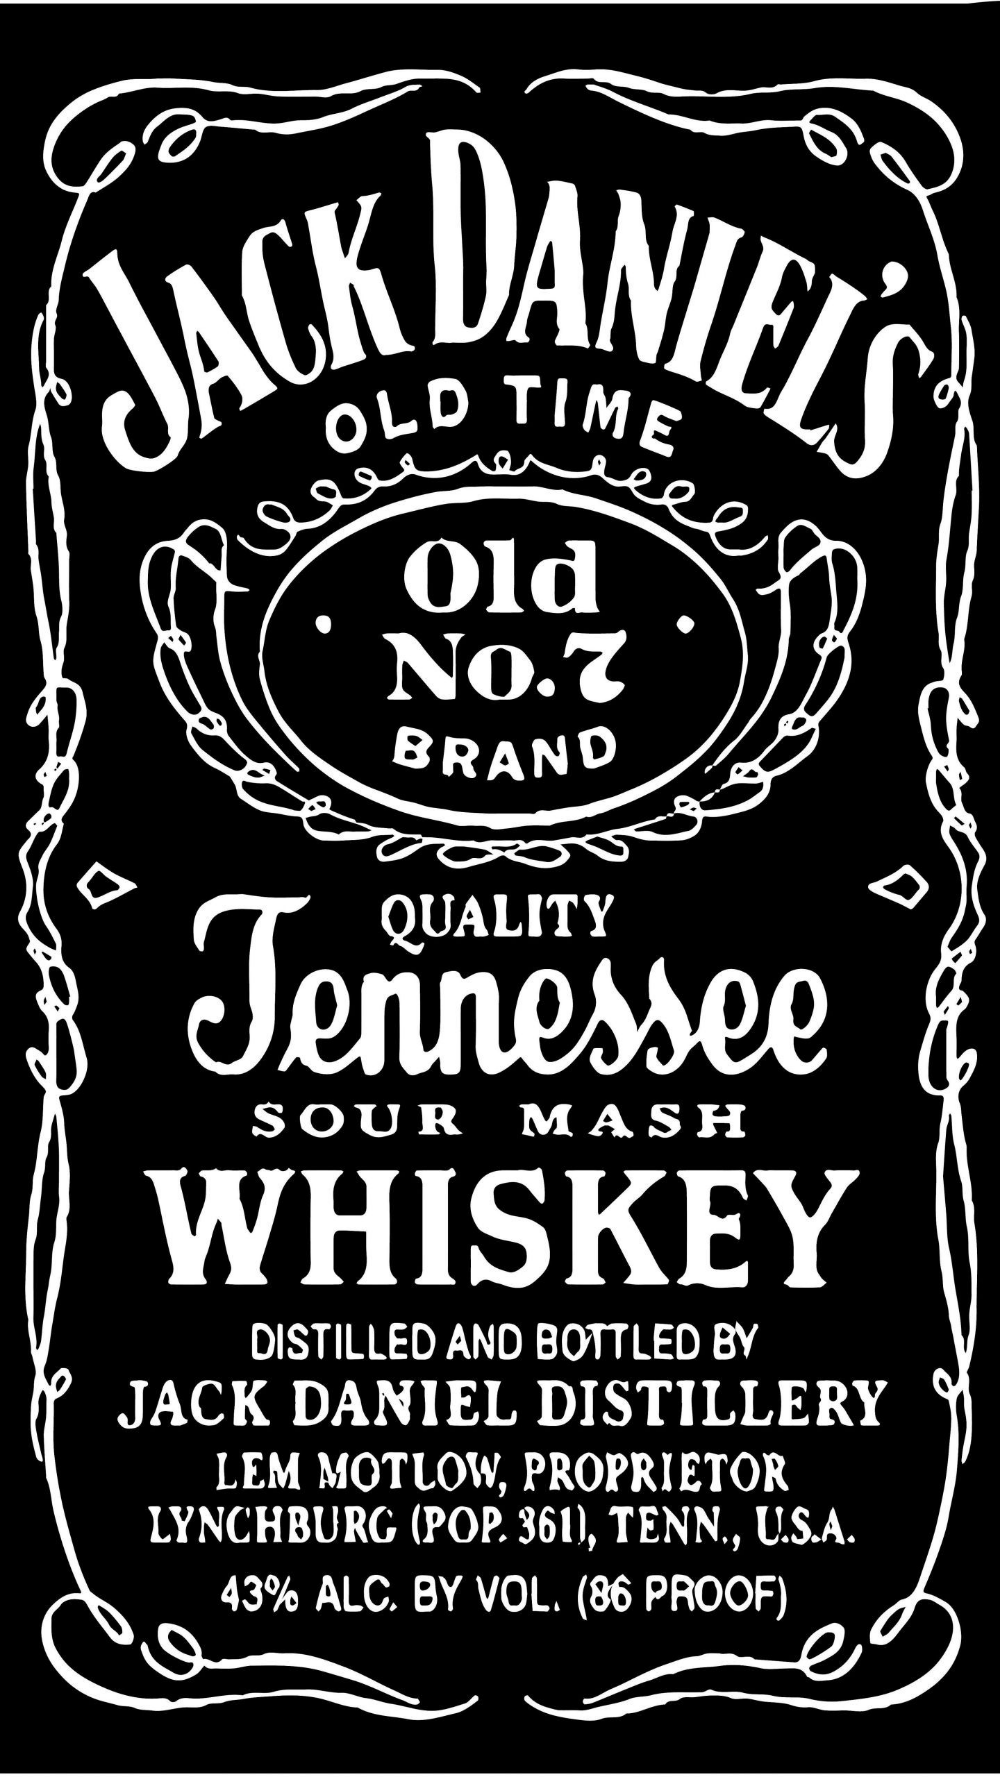 35 Tennessee Whiskey Wallpapers Download At Wallpaperbro Jack Daniels Jack Daniels Wallpaper Jack Daniels Logo